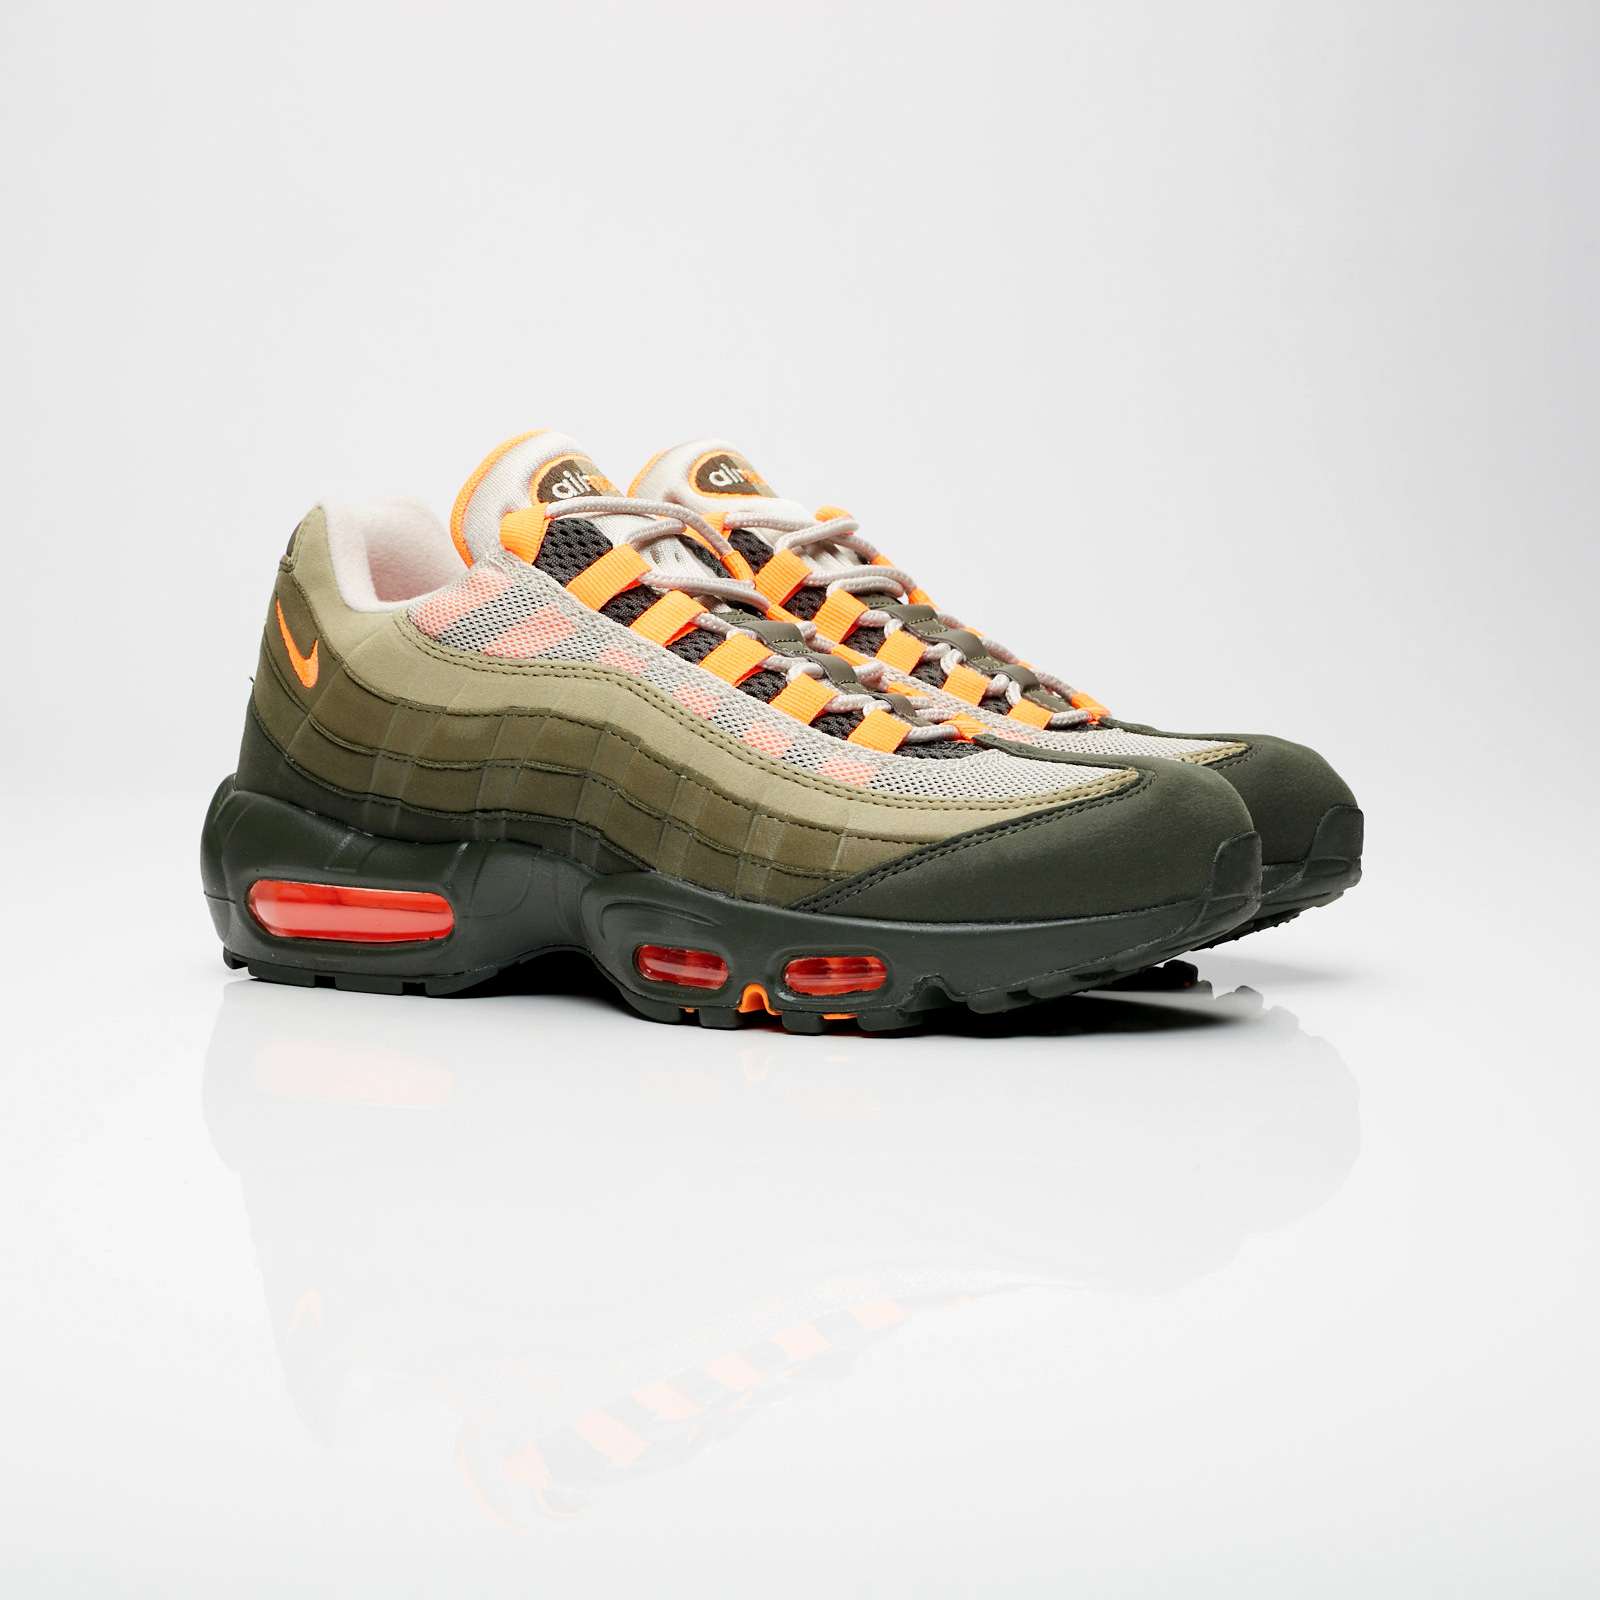 831e7dcc15 Nike Air Max 95 OG - At2865-200 - Sneakersnstuff